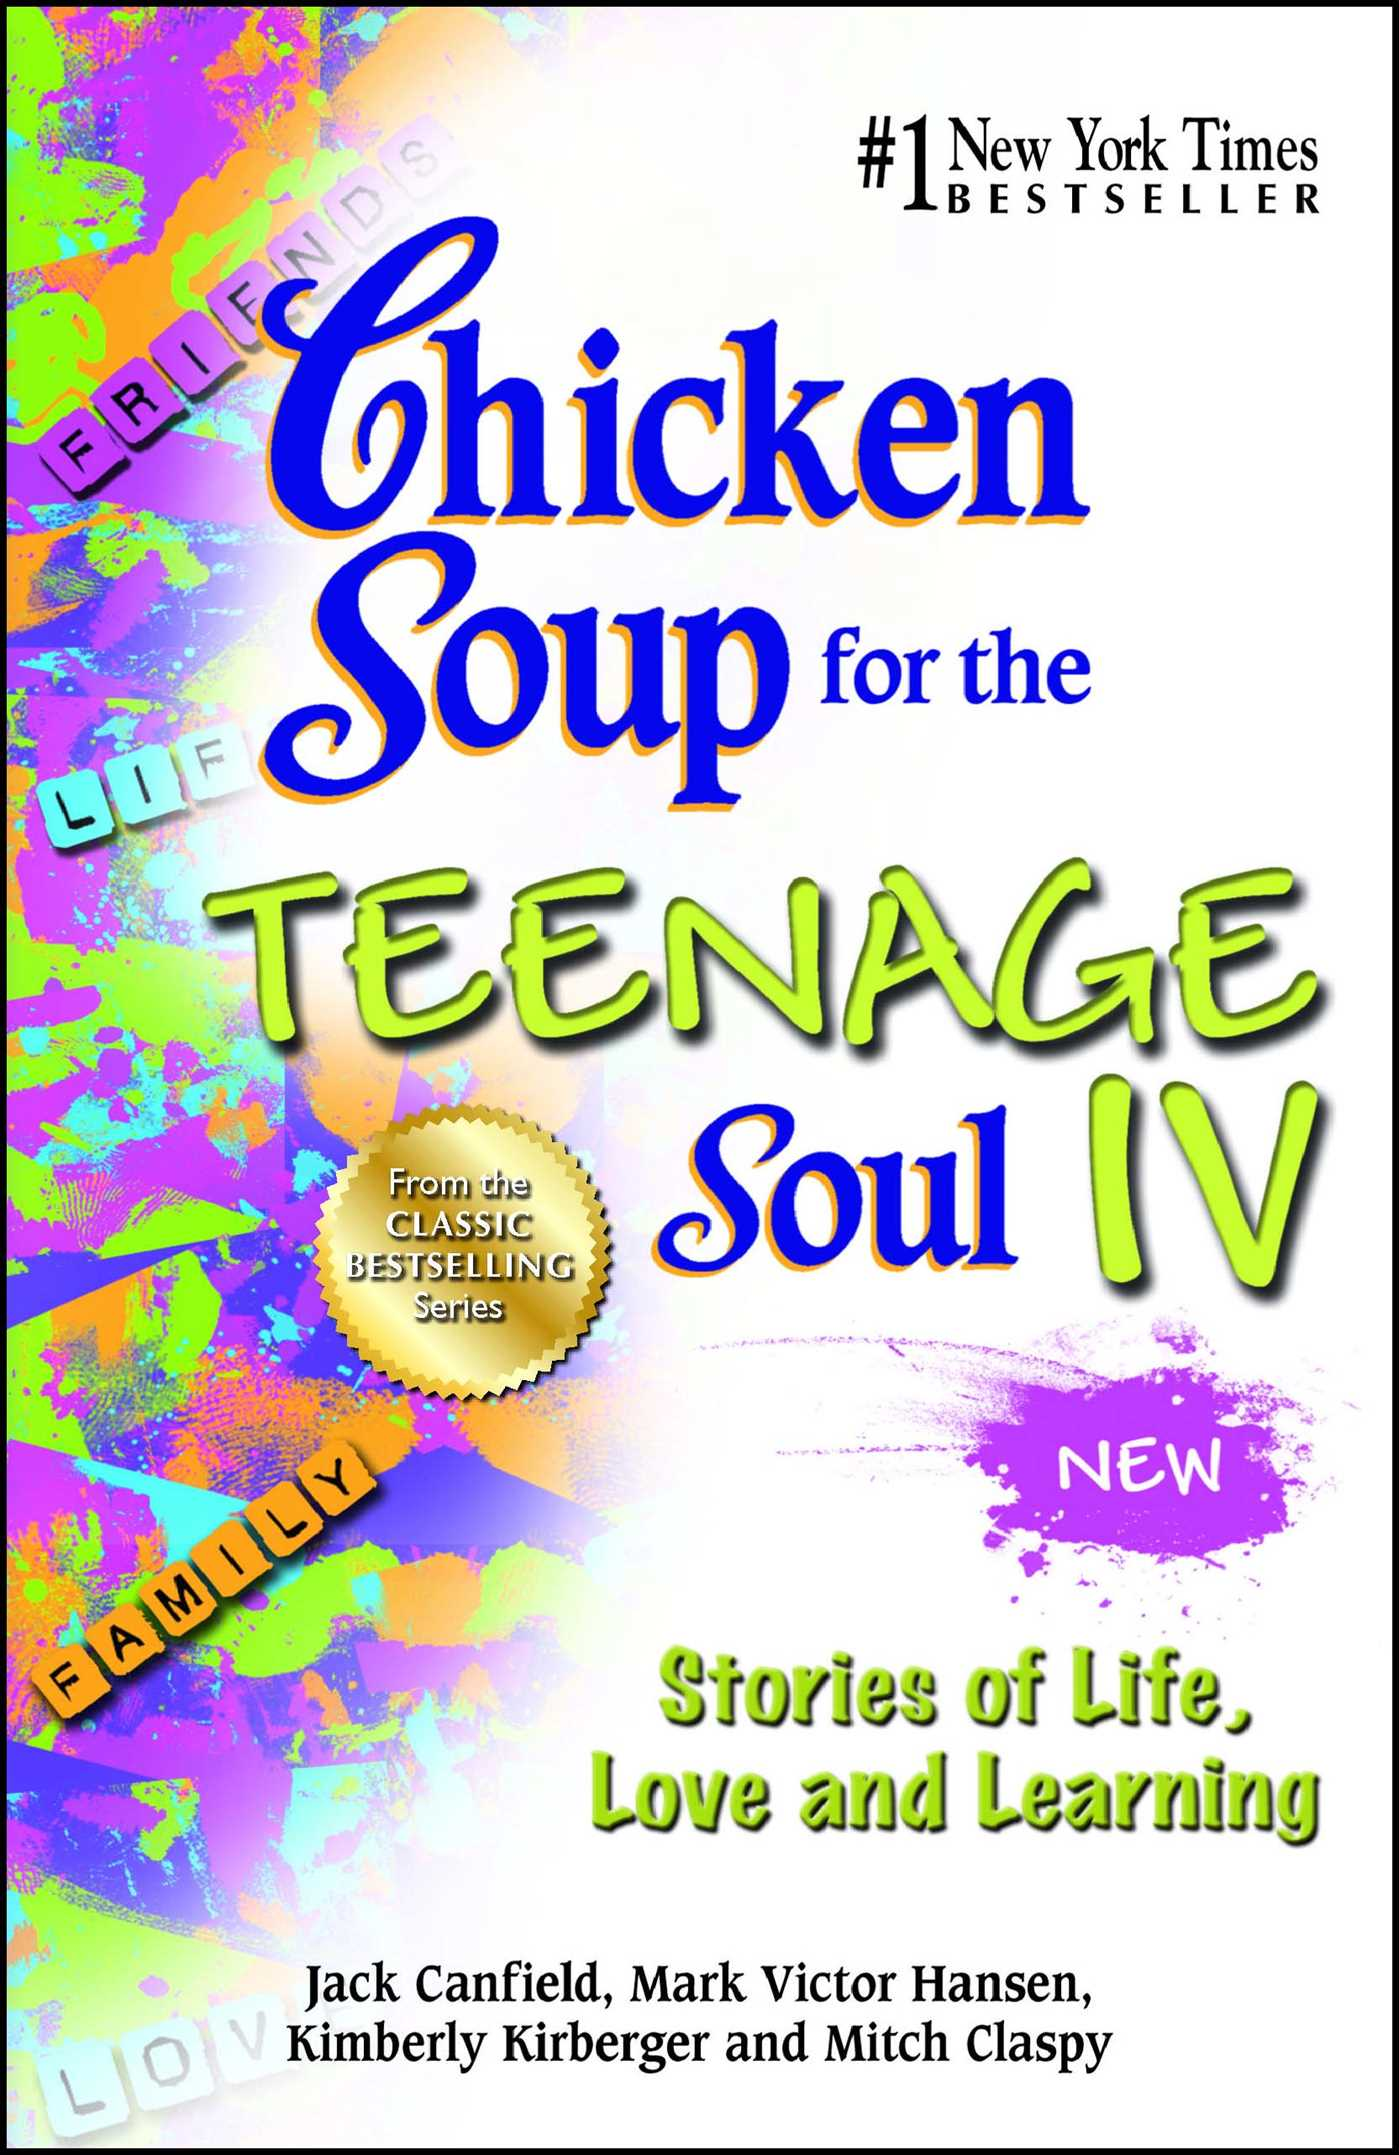 Chicken soup for the teenage soul iv 9781623610234 hr